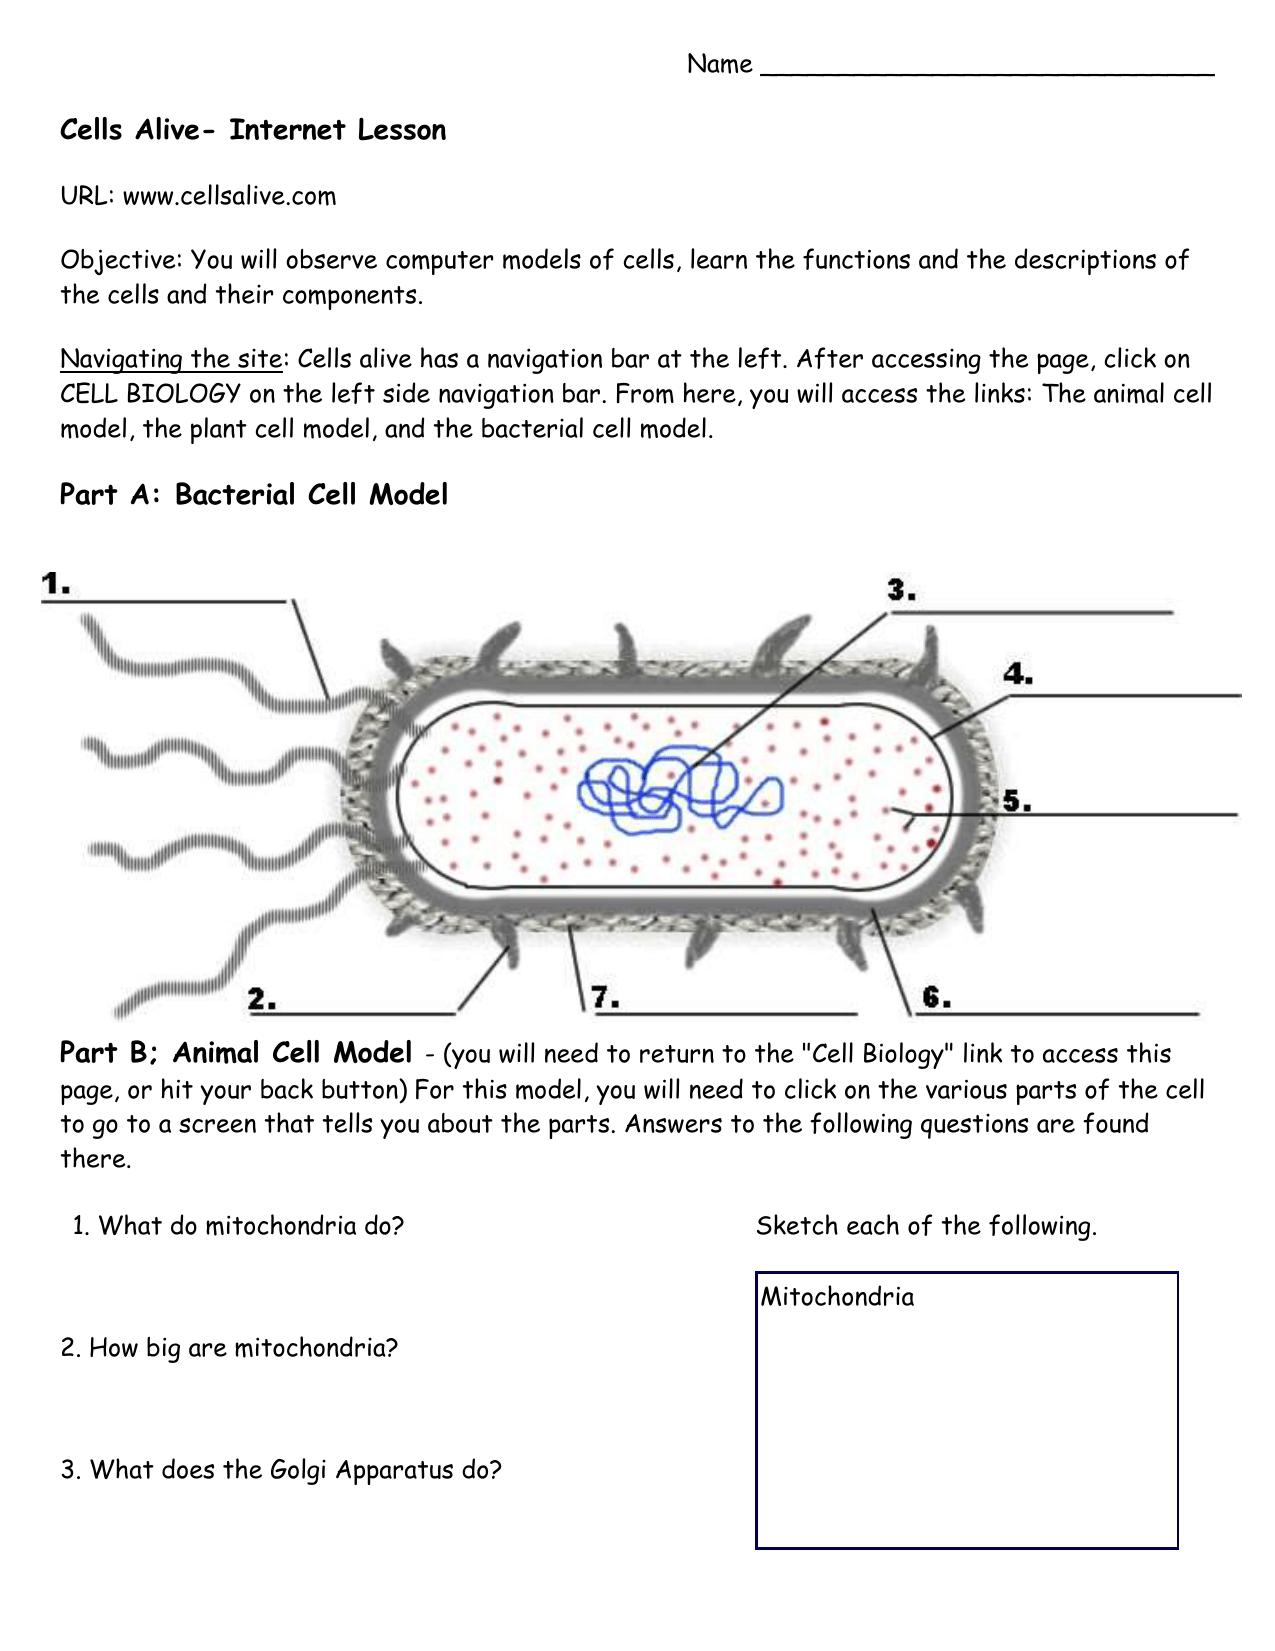 Cells Alive Bacterial Cell Worksheet Answer Key